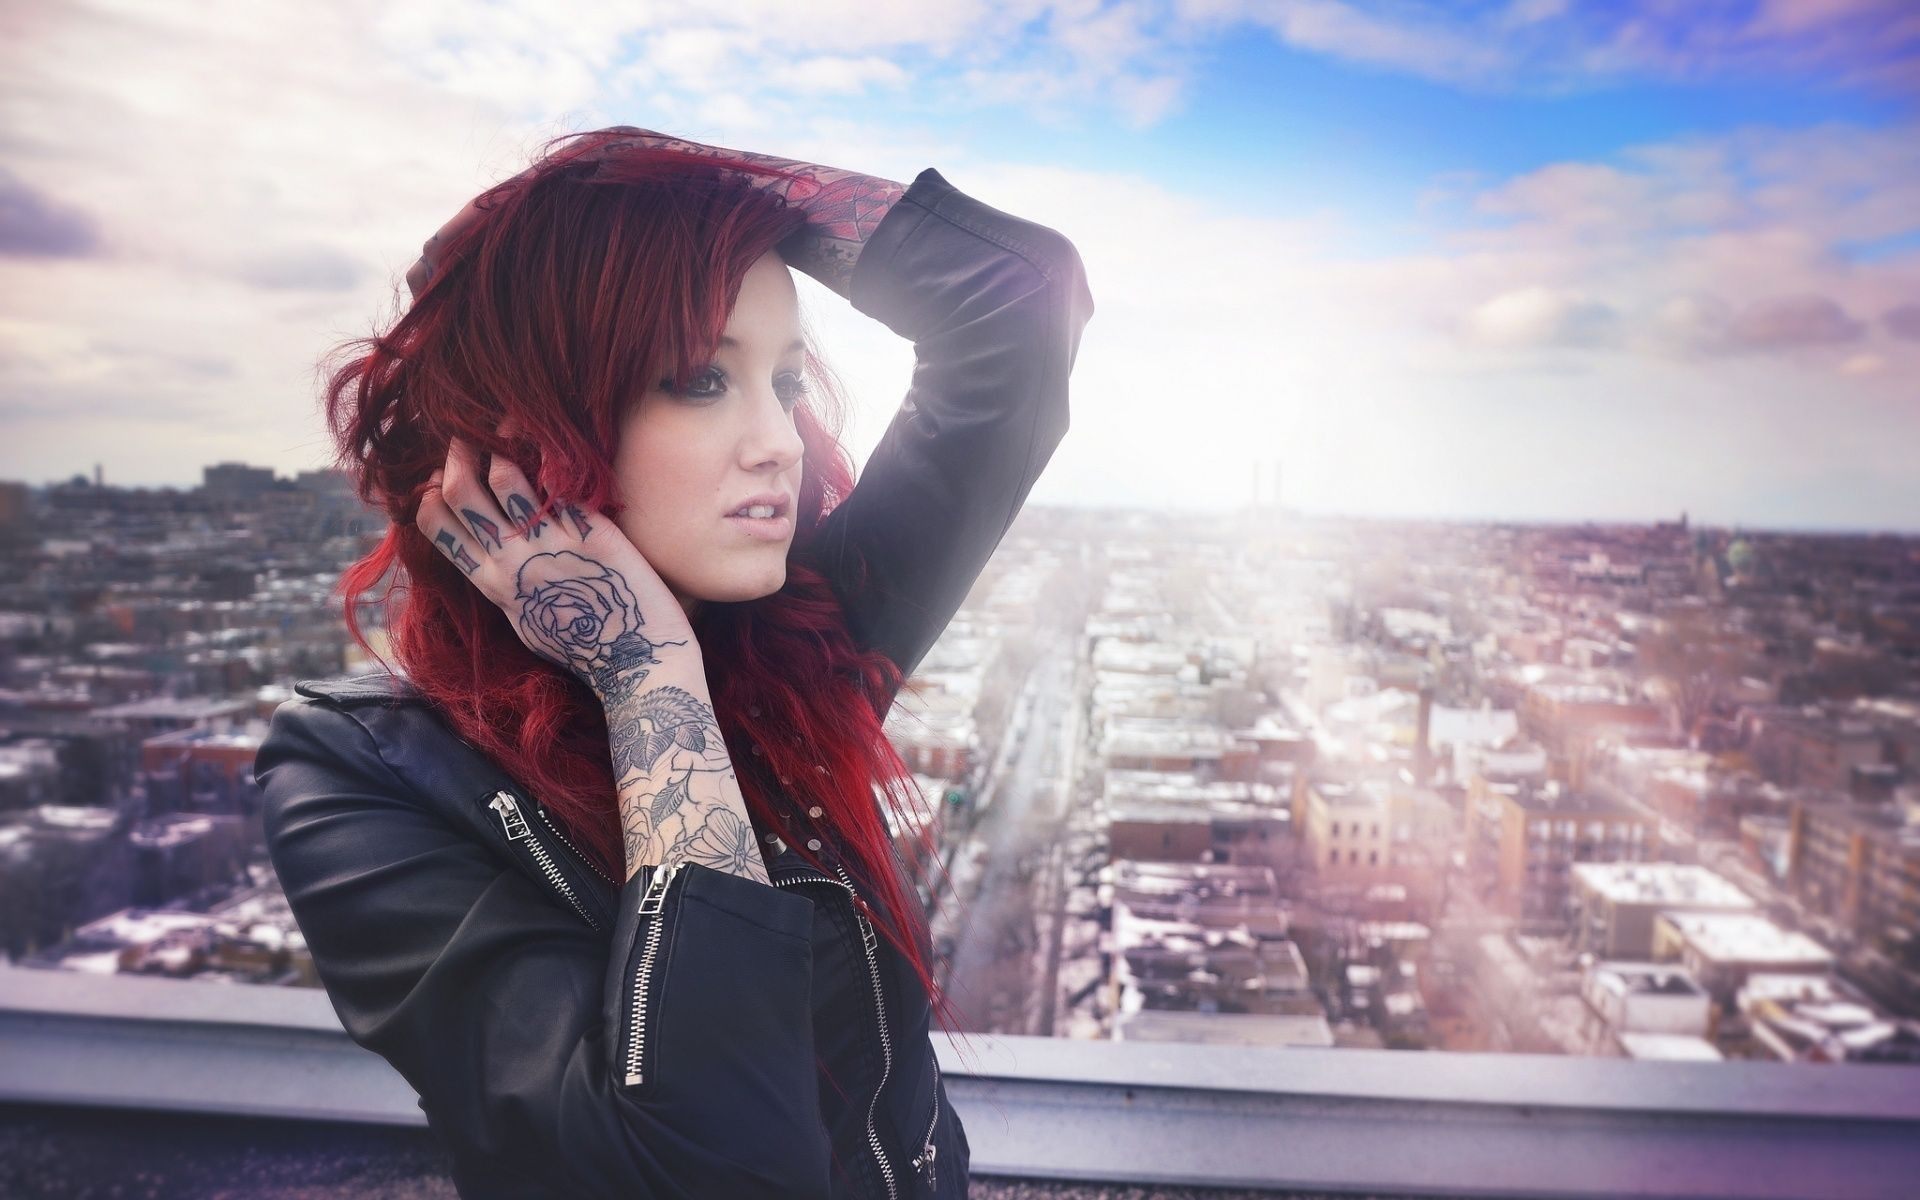 Girl Tattoo Red Hair 1434940 Hd Wallpaper Backgrounds Download